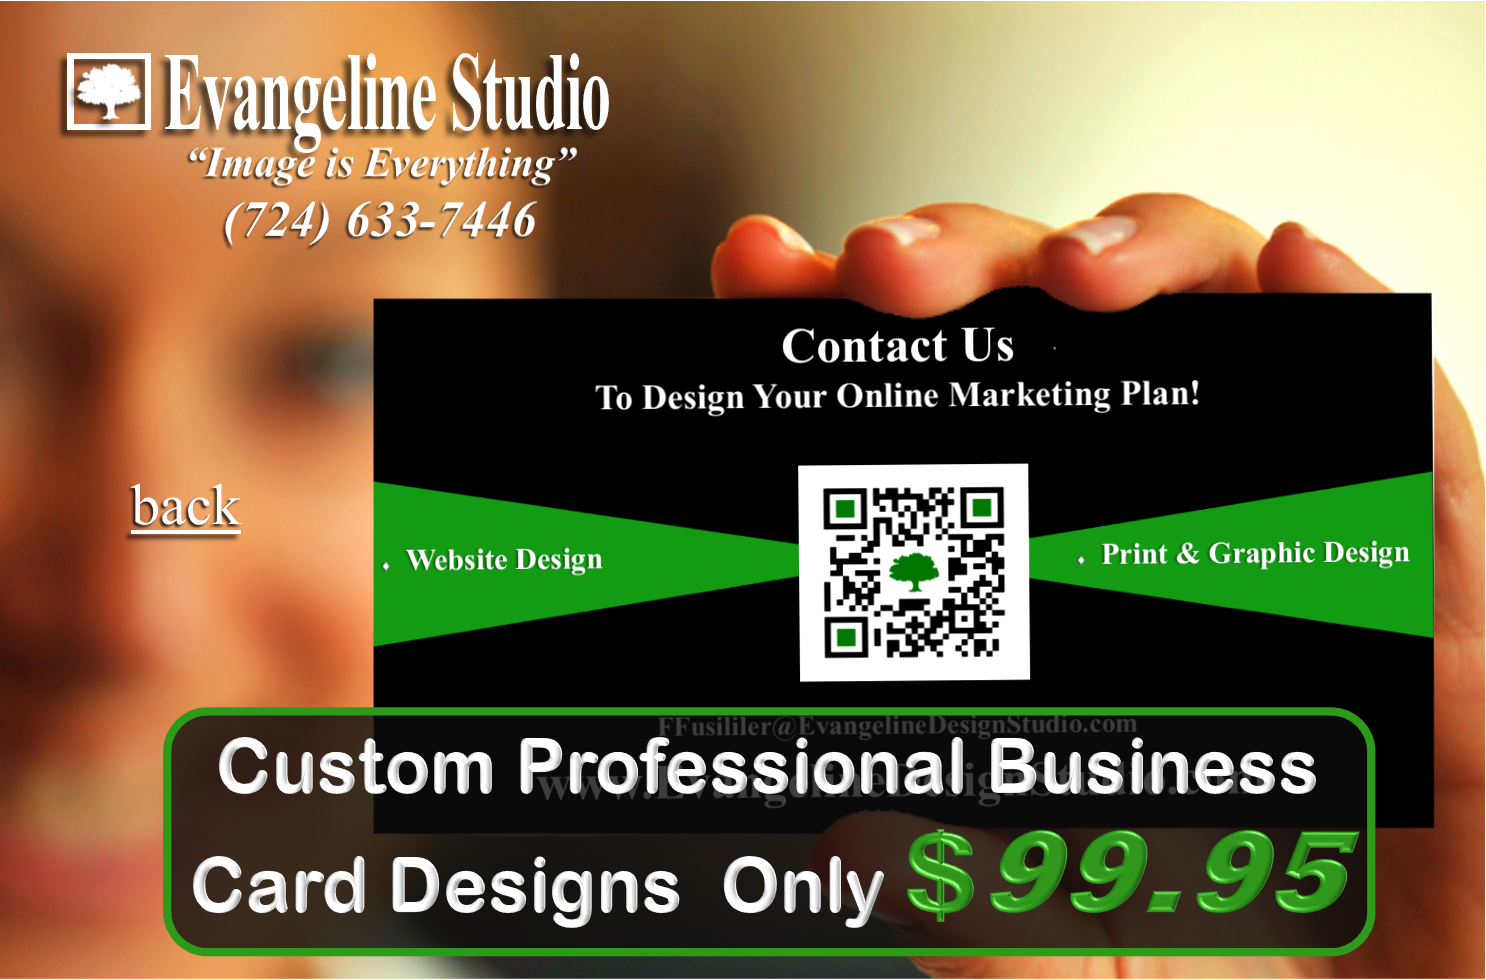 1 INTERNET MARKETING SERVICES COMPANIES | EVANGELINE STUDIO